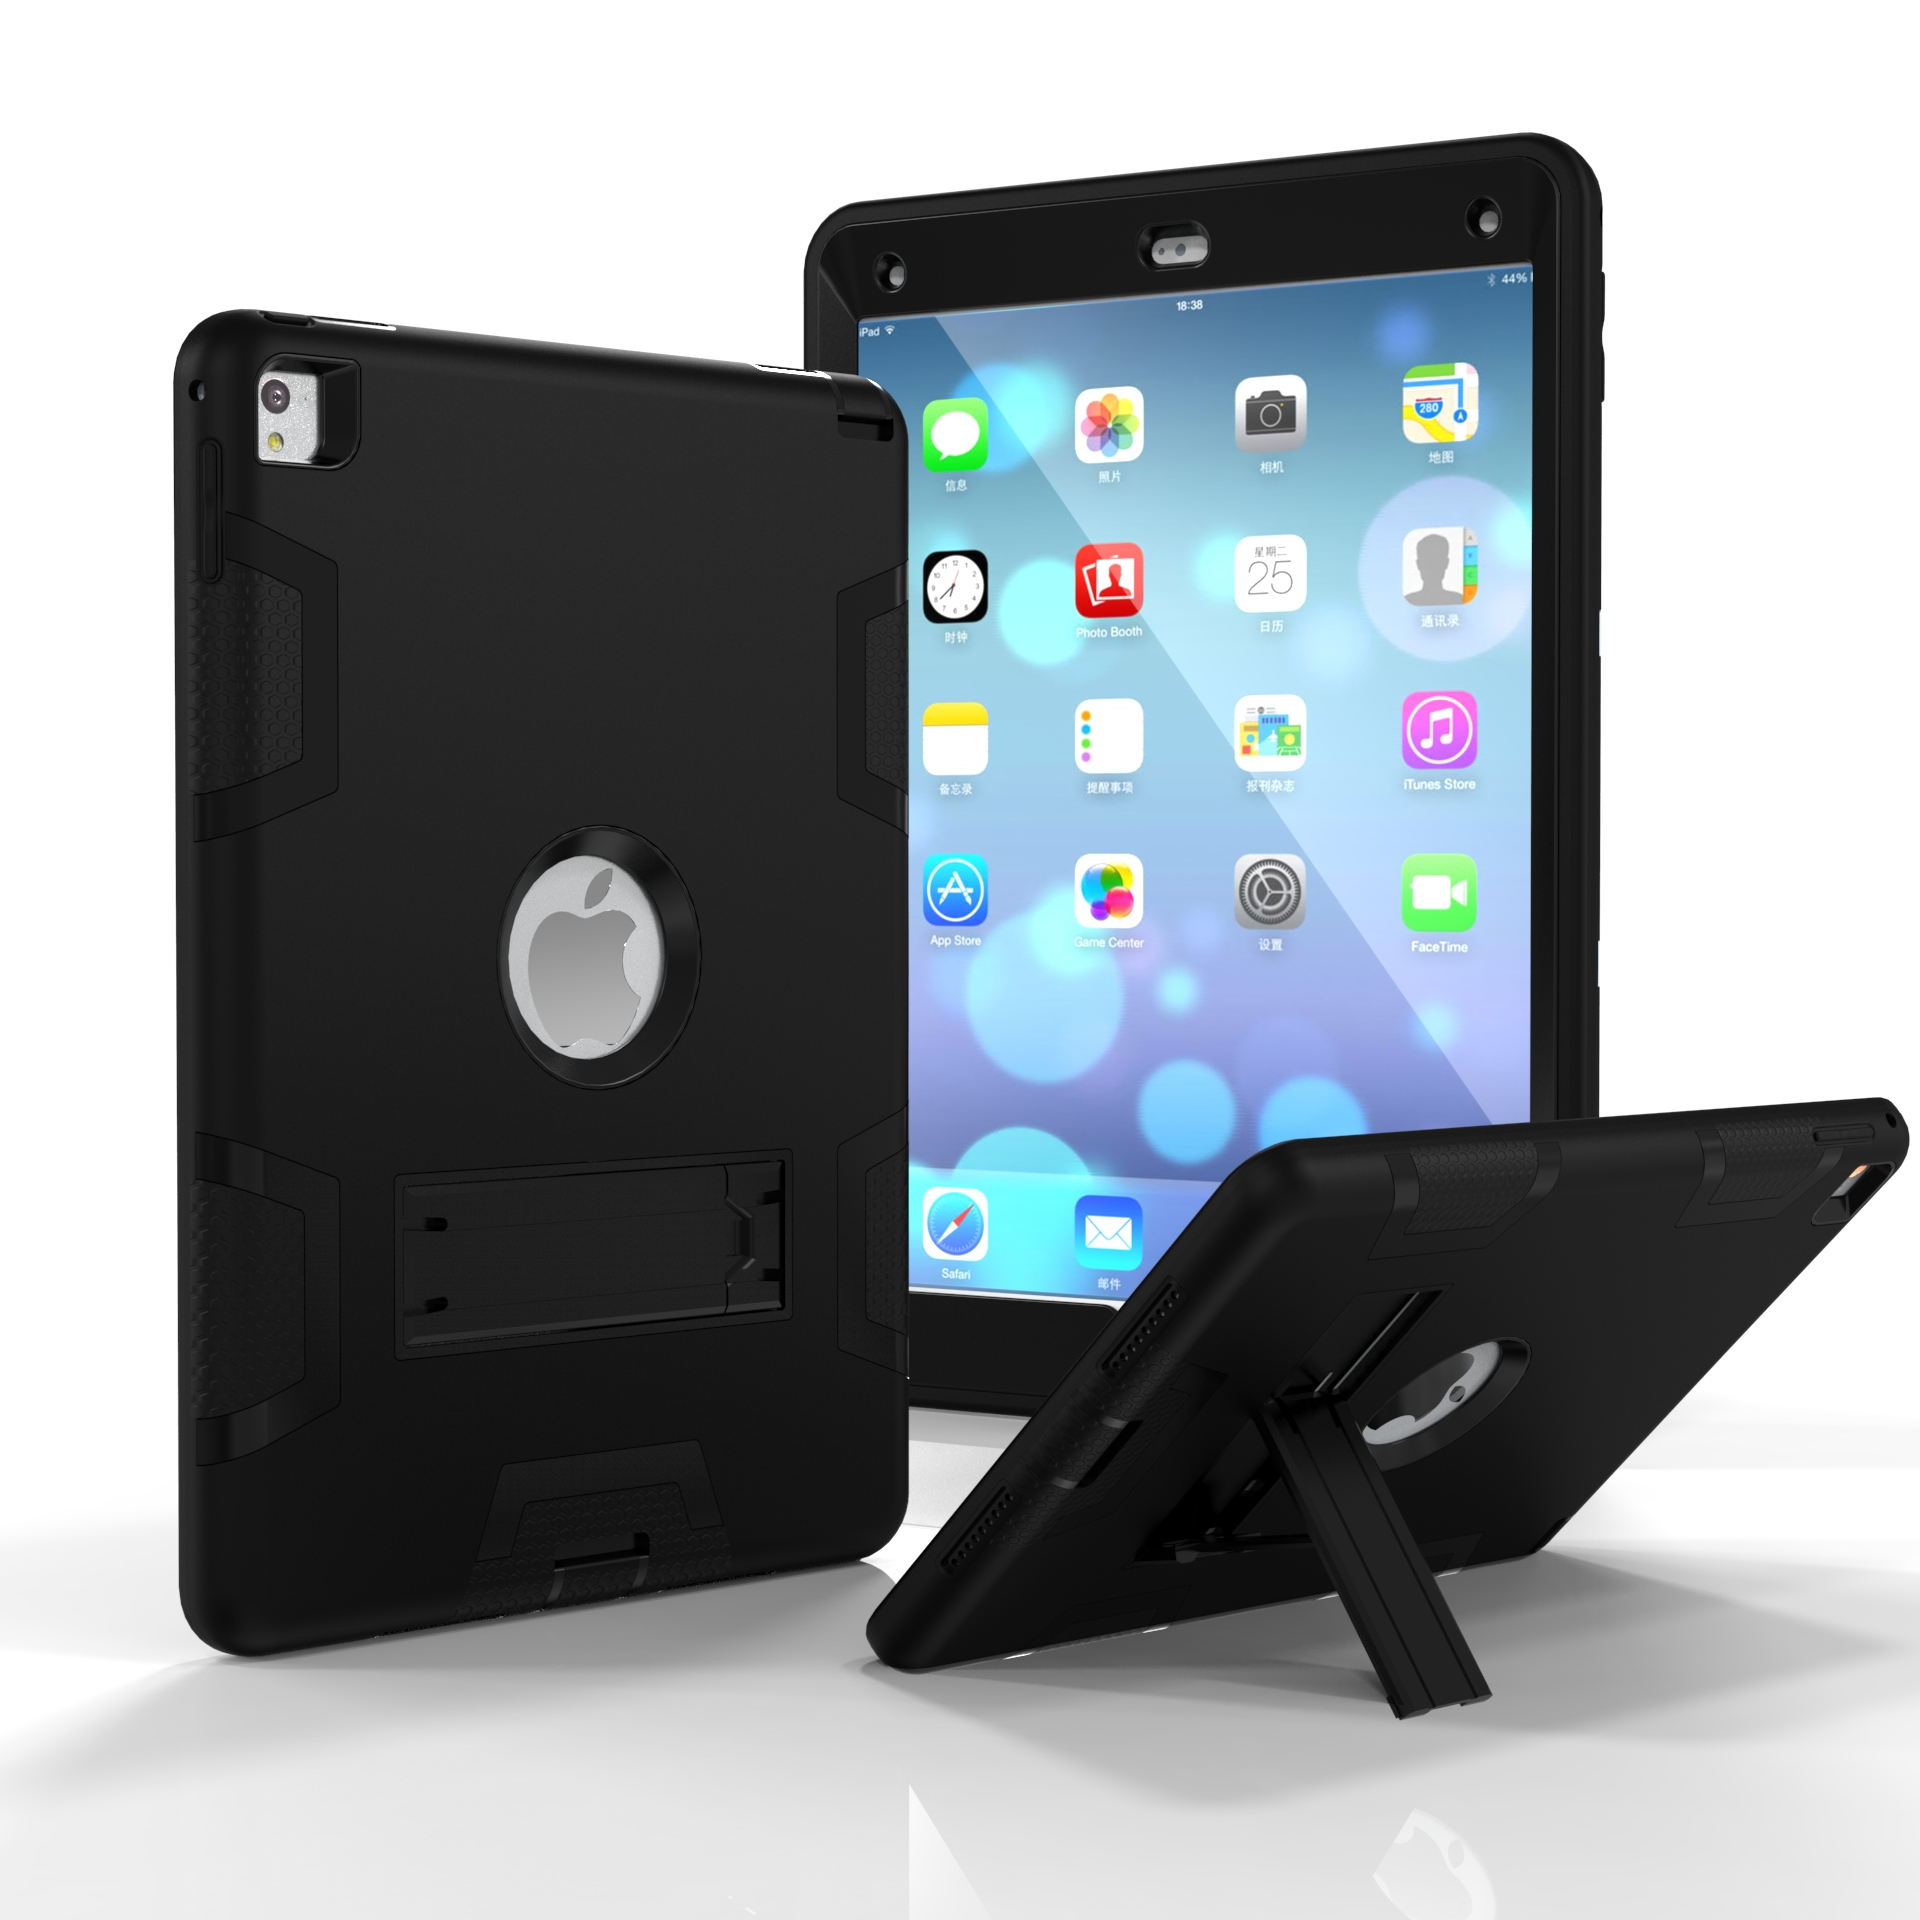 For iPad air2/iPad 6/iPad pro 9.7 2016 PC+ Silicone Hit Color Armor Case Tri-proof Shockproof Dustproof Anti-fall Protective Cover  Black + black